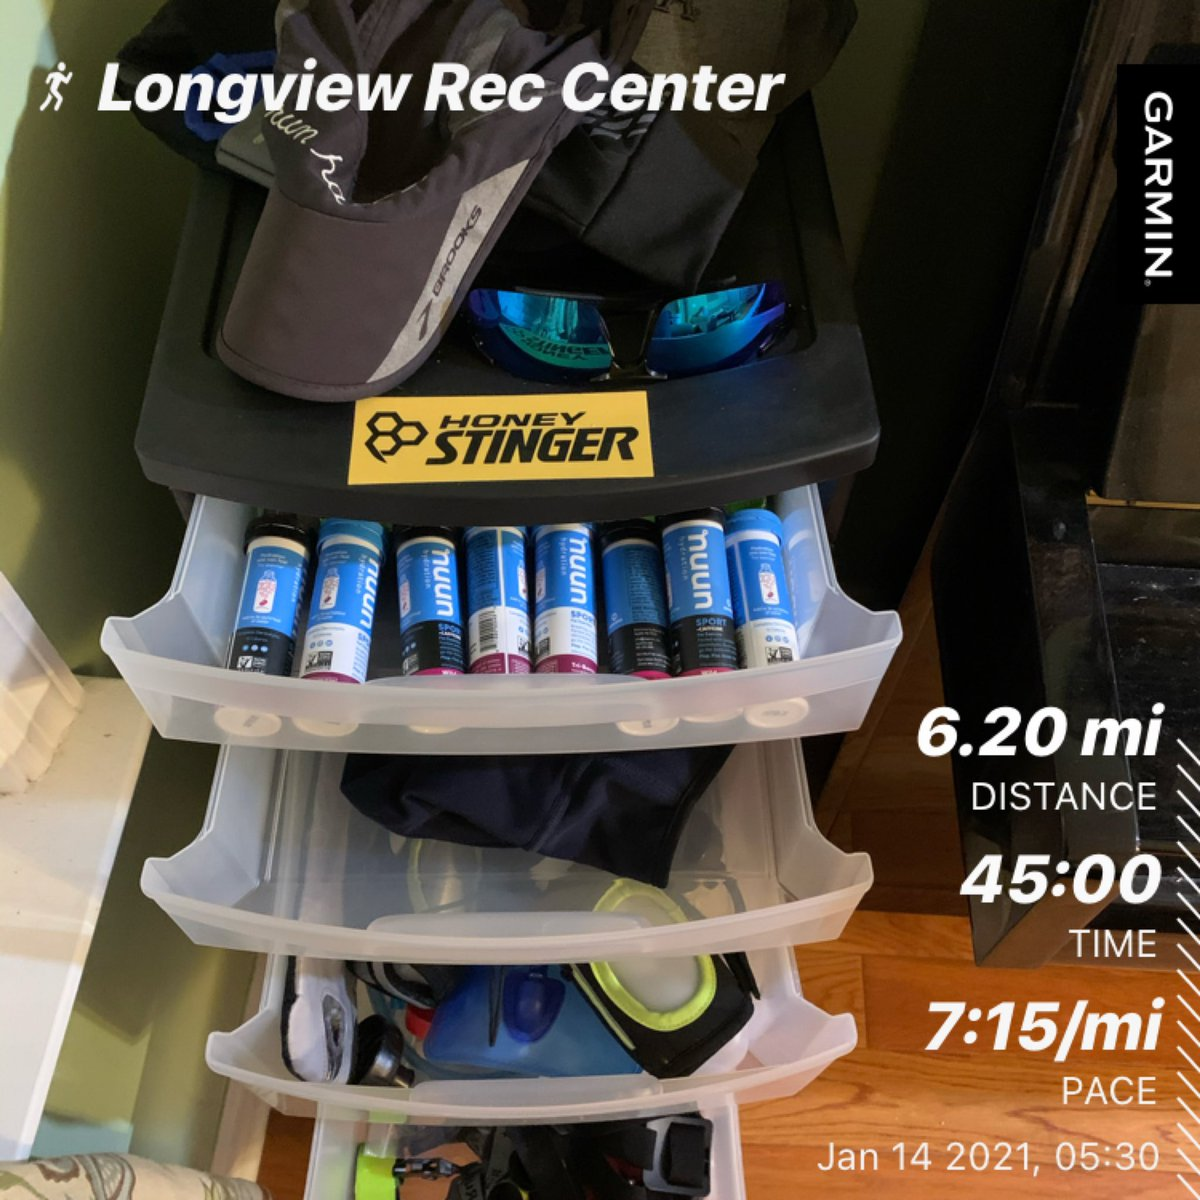 Meant to post yesterday. My love hate relationship with the treadmill continues.   1st 5k at a 7:00 pace with 2nd 5k at 7:30 pace. #nuunlife #hshive #honeystingerambassador #ultraammbassador #teamultra @HoneyStinger @nuunhydration @MichelobULTRA